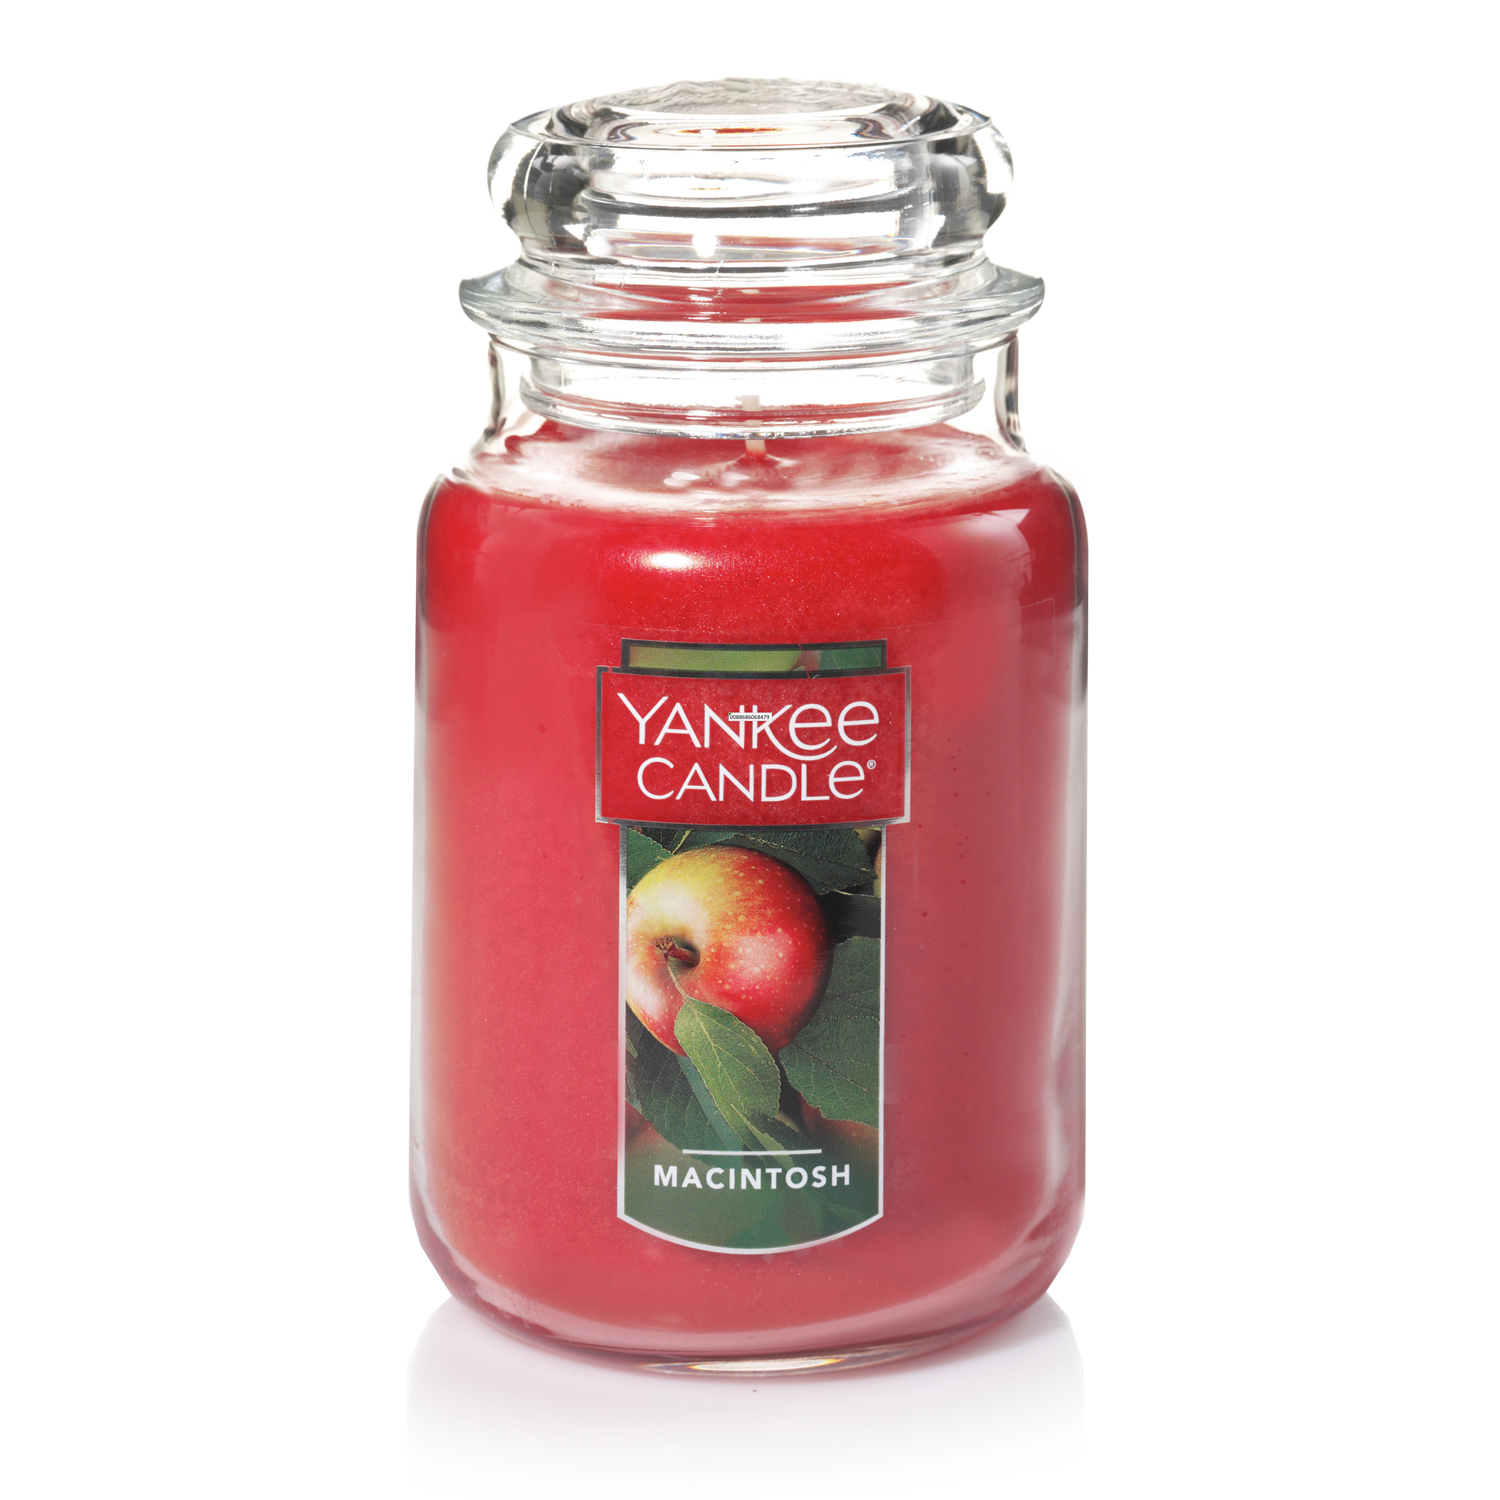 Yankee Candle Macintosh - Small Classic Jar Candle